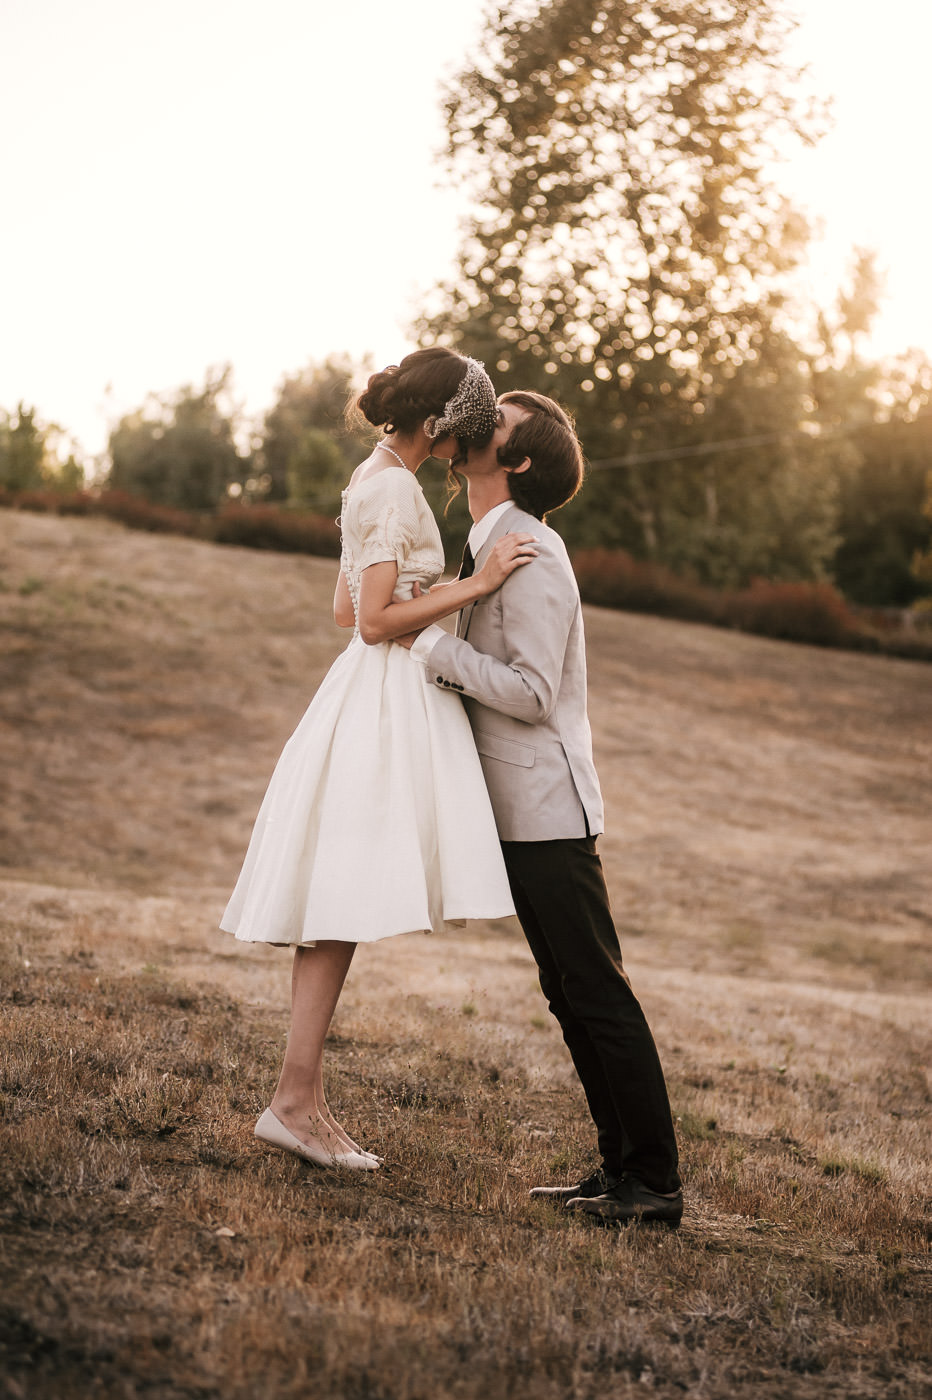 Cute couple with loads of vintage style kisses passionatly in a simple field as the sun sets on their Temecula wedding